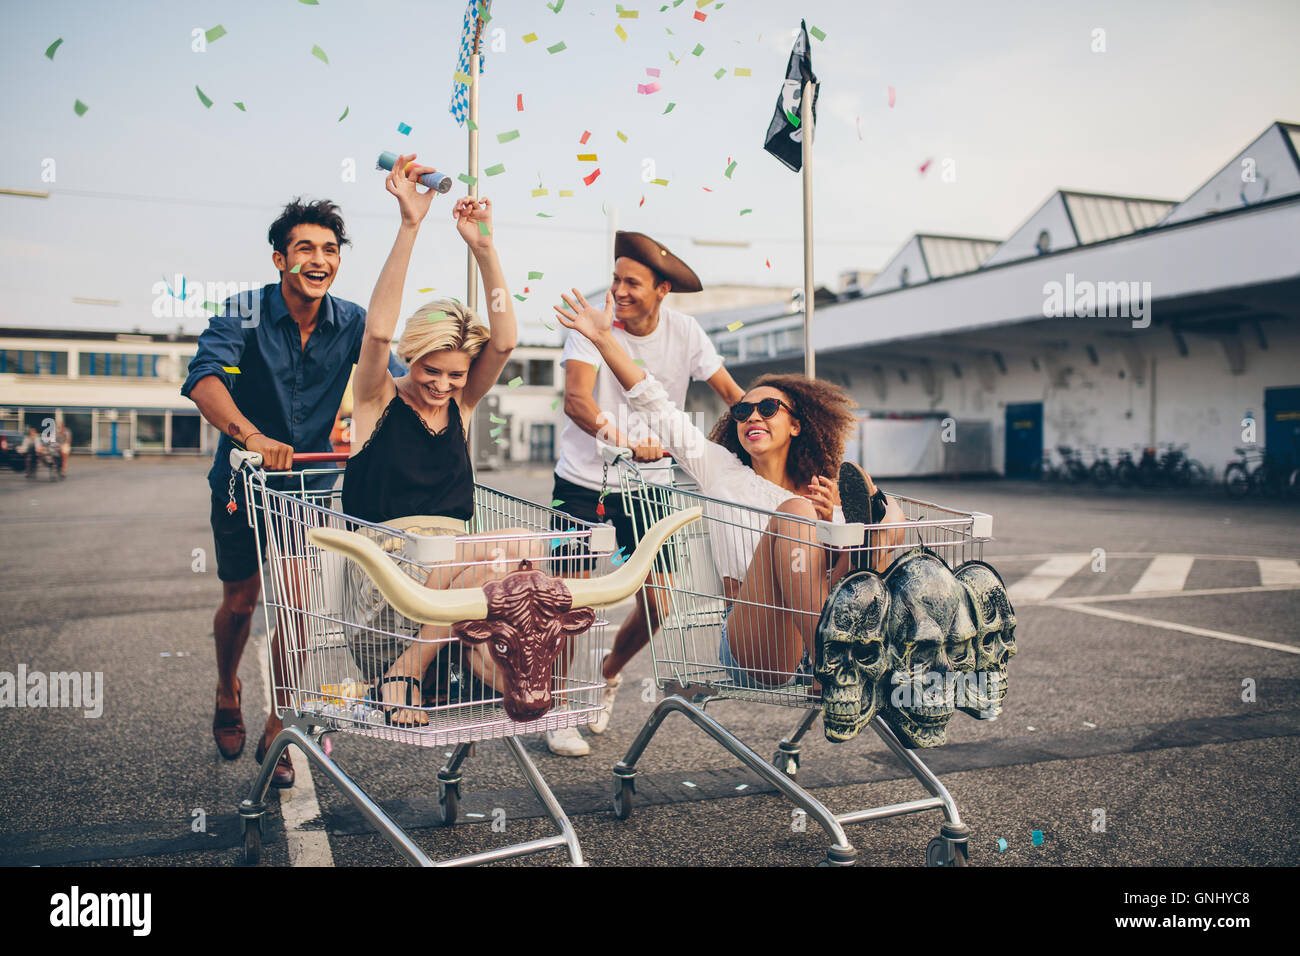 Young friends having fun on shopping trolleys. Multiethnic young people racing on shopping cart. - Stock Image